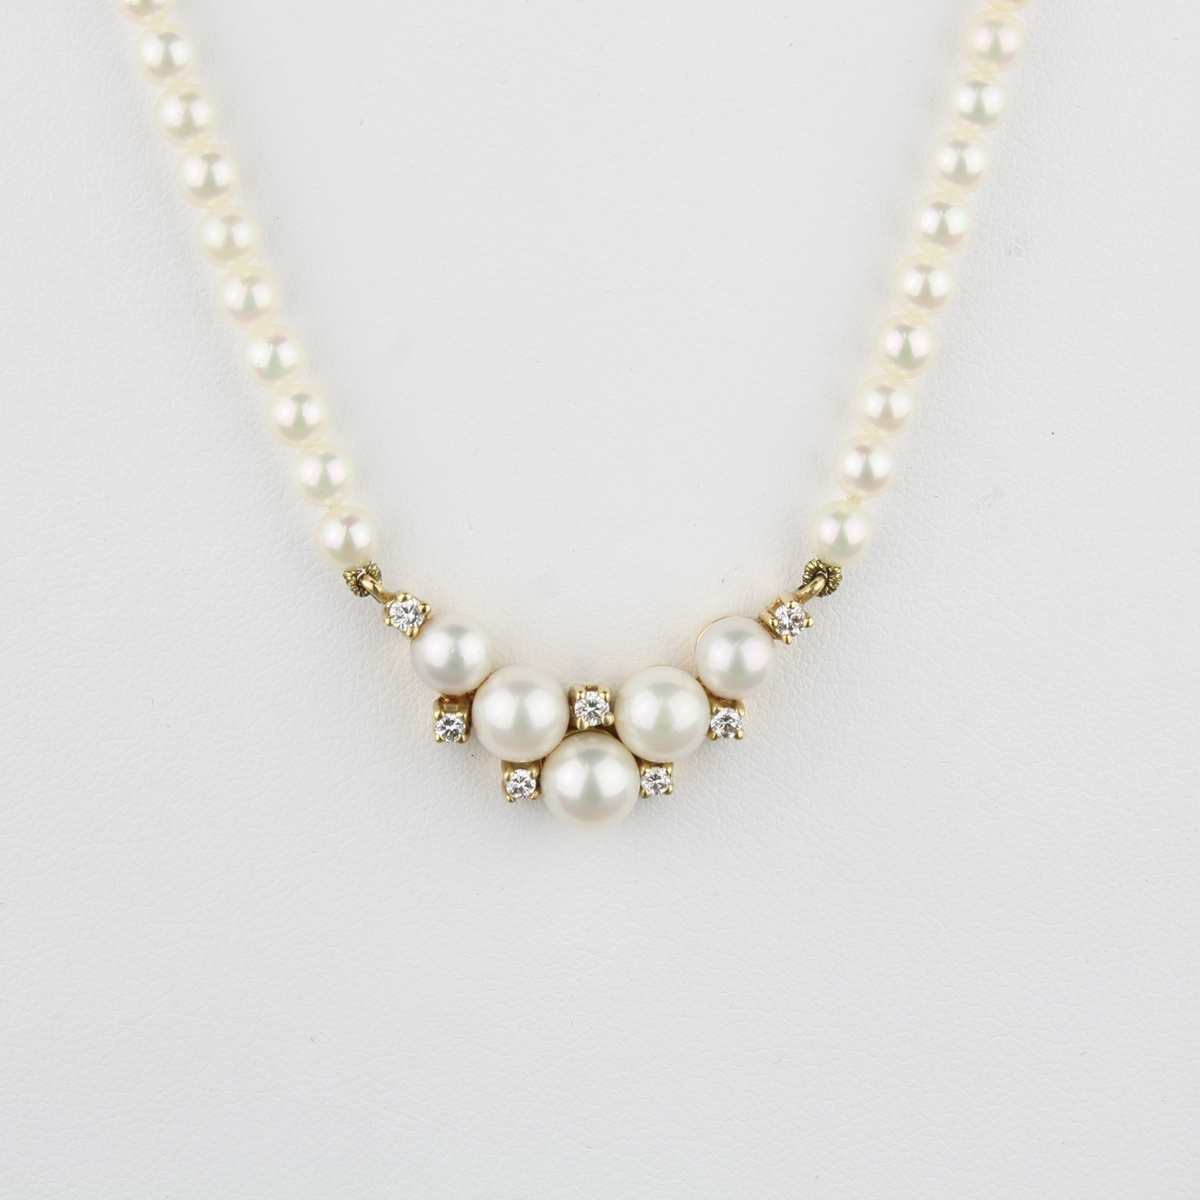 457123 pre owned 14k pearl and diamond necklace